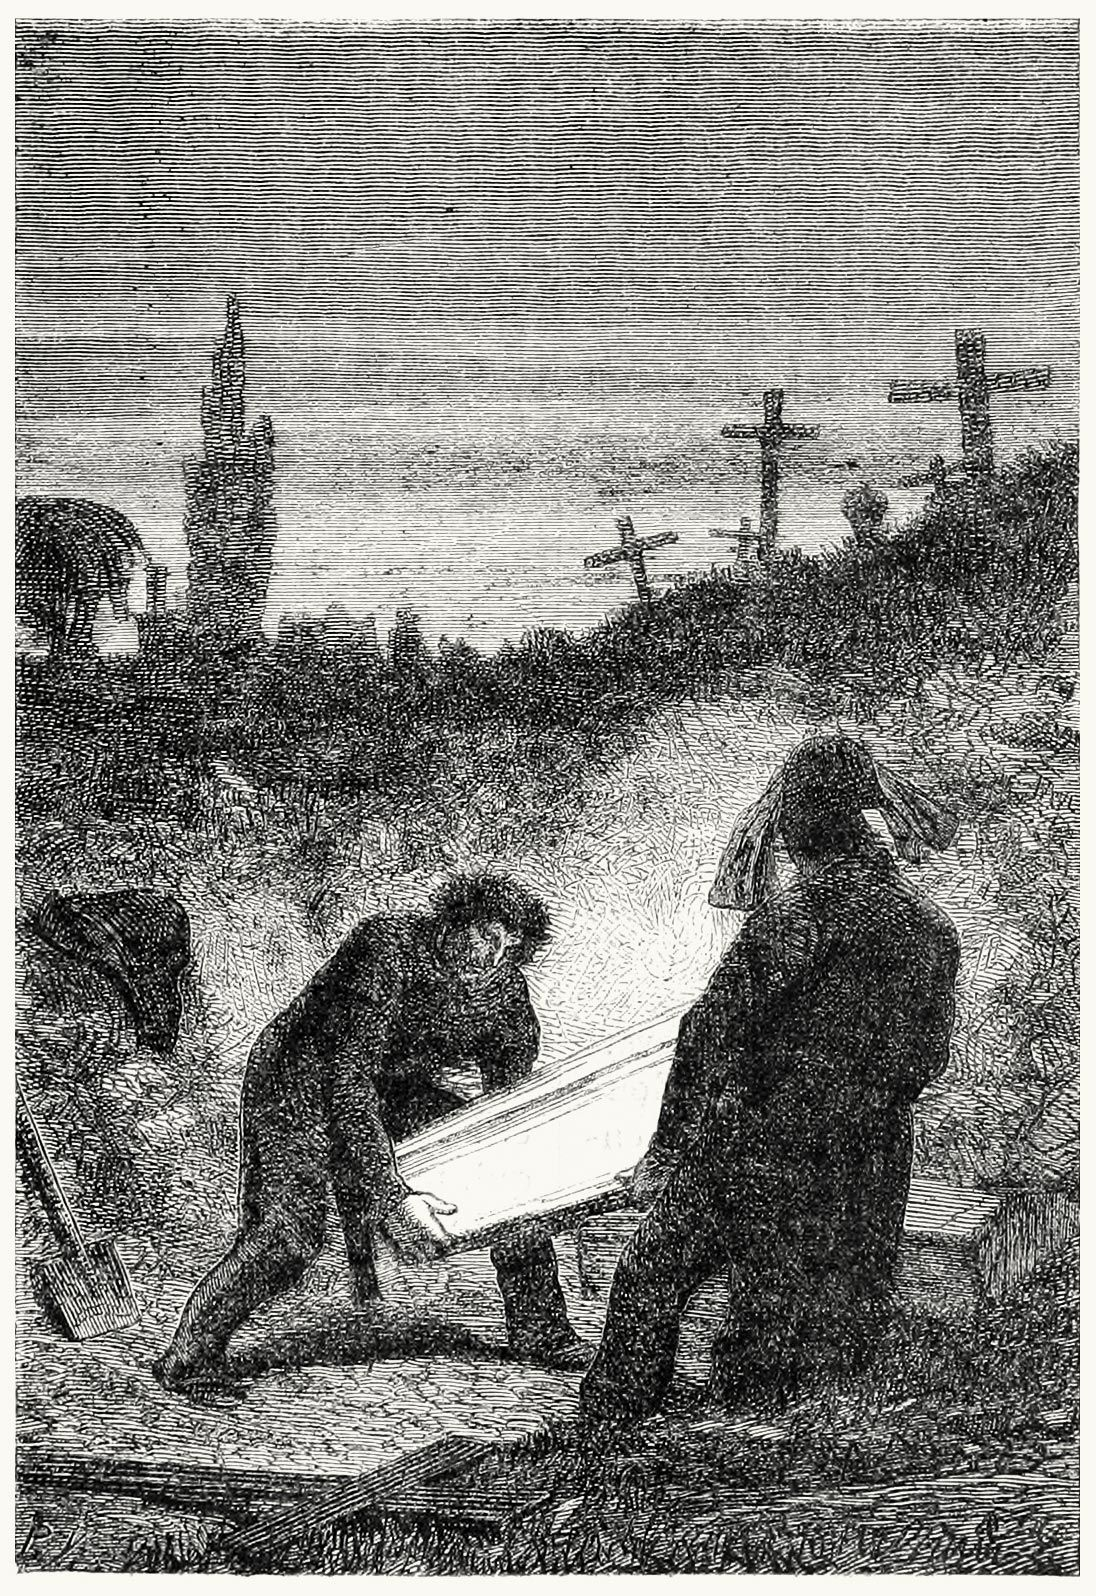 She was thrown into the public grave. Gustave Brion, from Les misérables, by Victore Hugo, Paris, 1867. (Source: https://archive.org/details/lesmisrable00hugo)